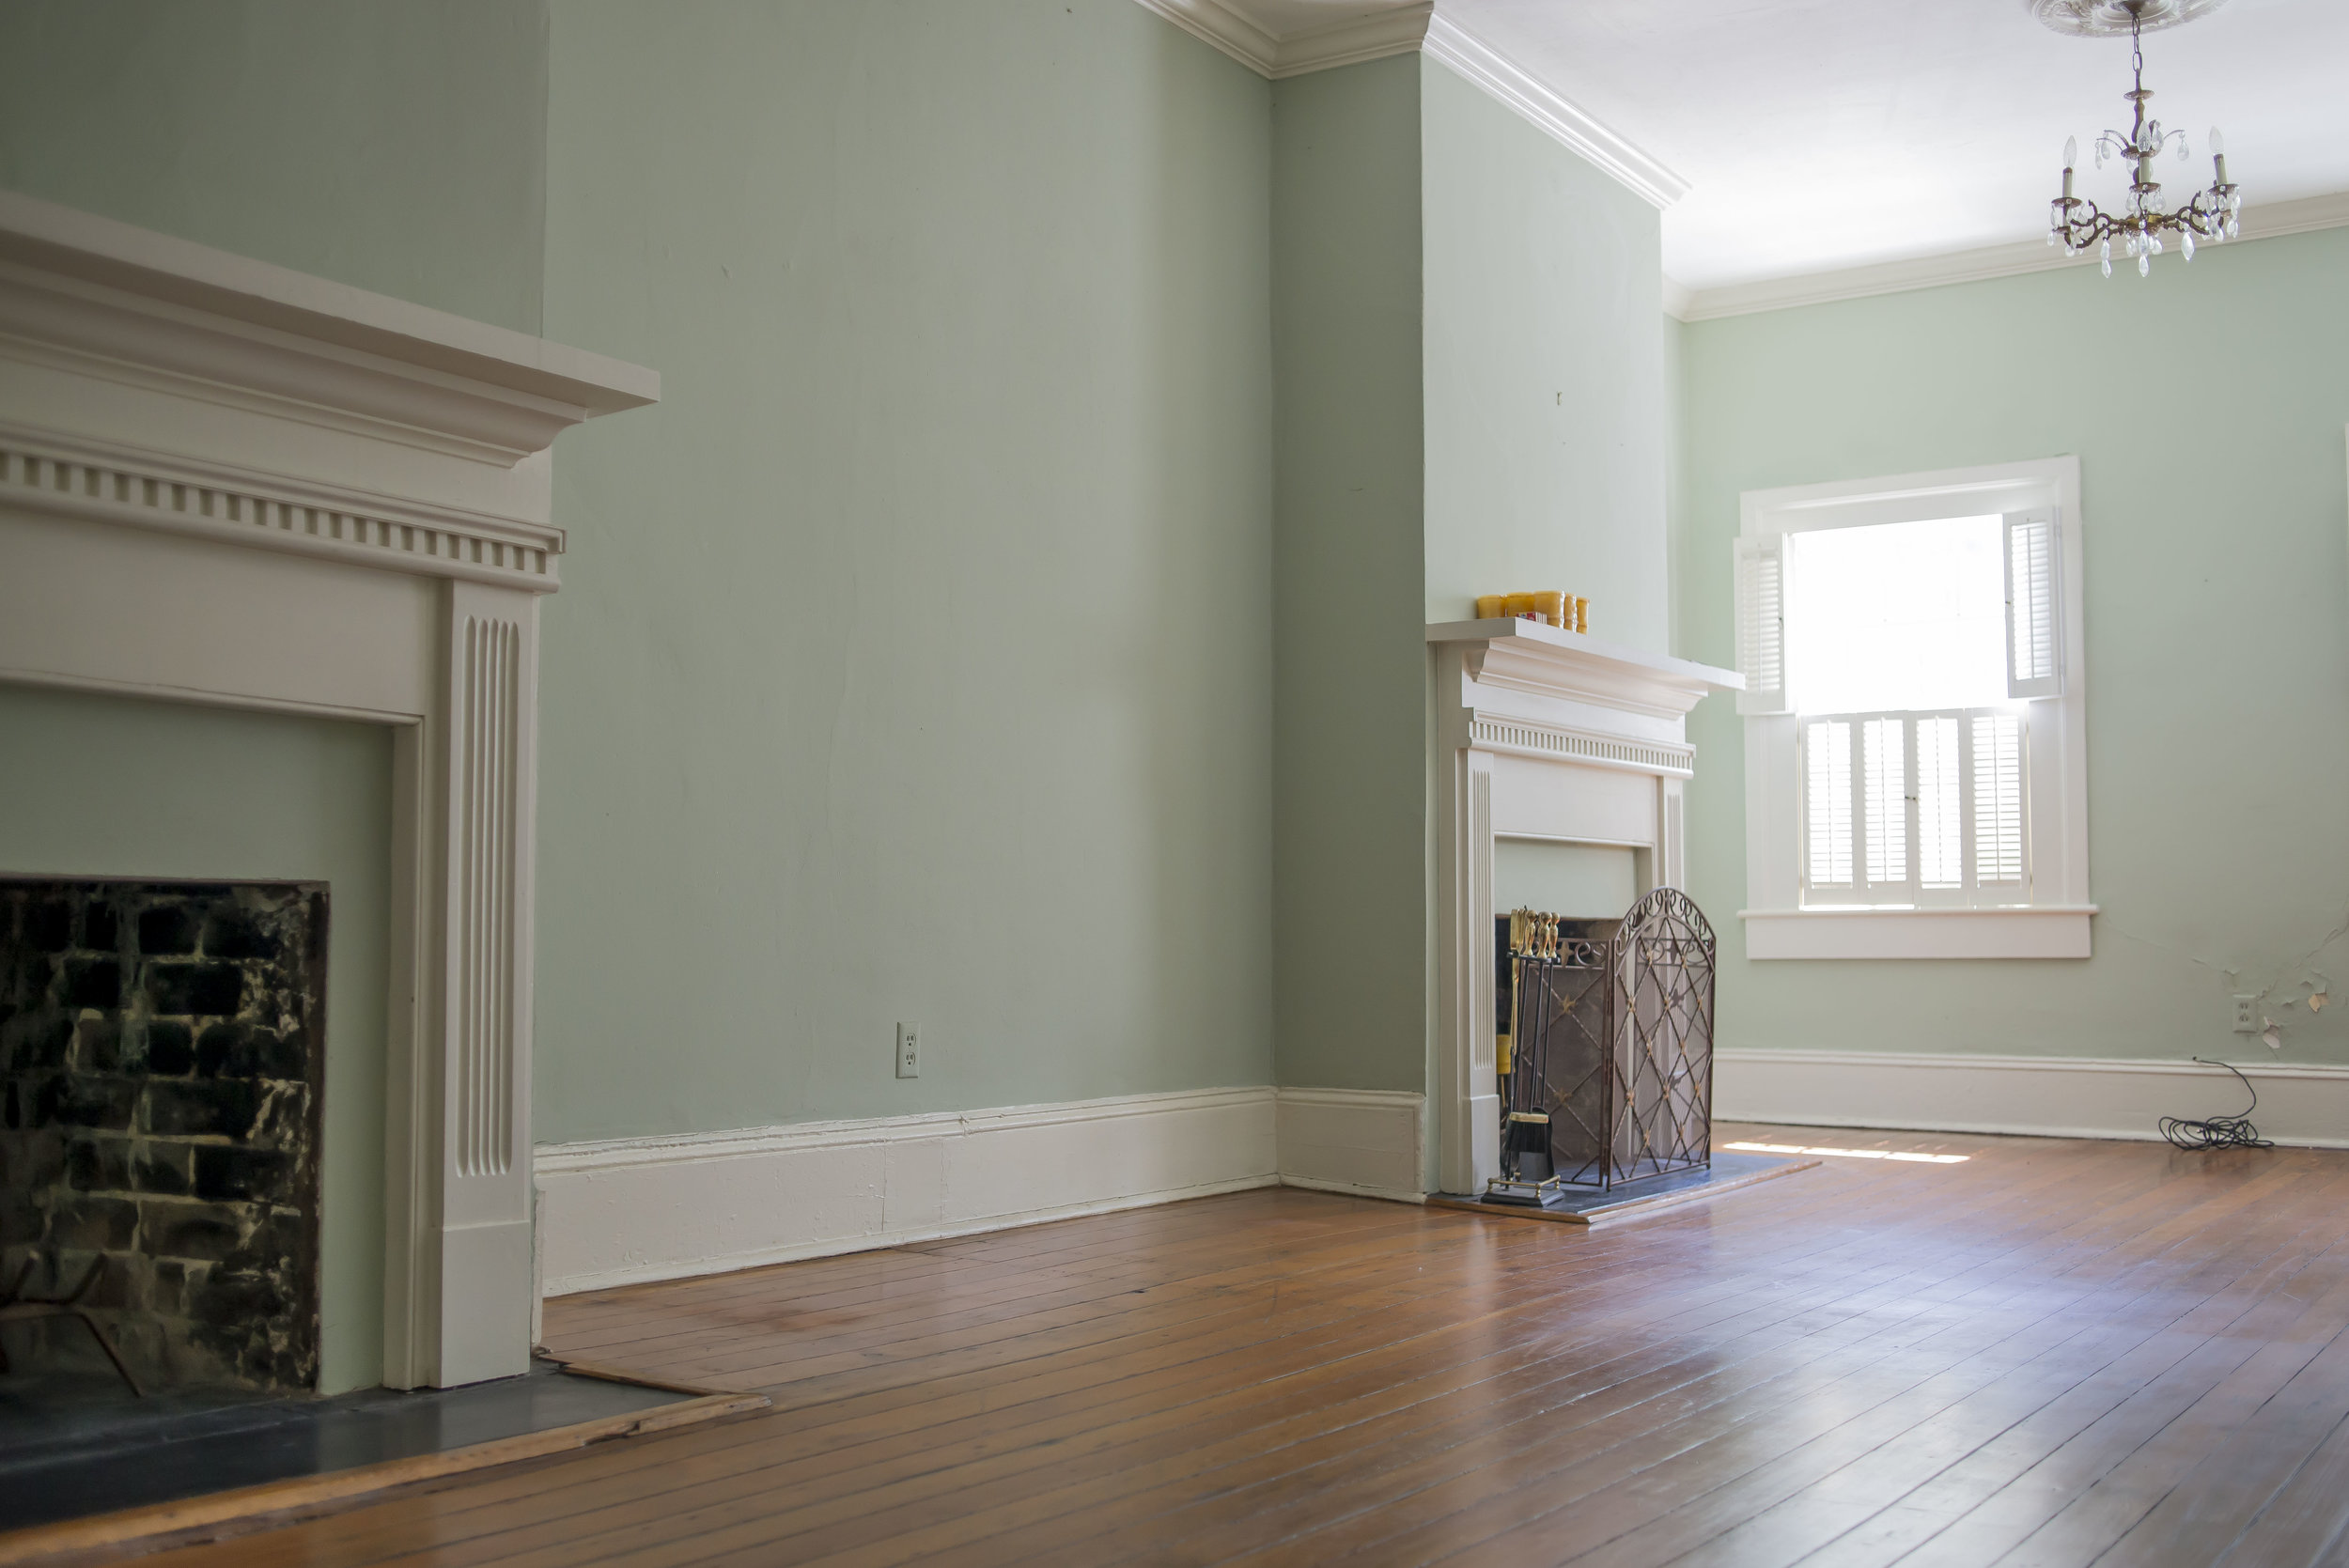 The double parlor is such a fun feature. We knew the paint color would change, of course, everything from the floors to the ceilings needed to be refinished and reimagined, with preserving the original design at the front of our minds.